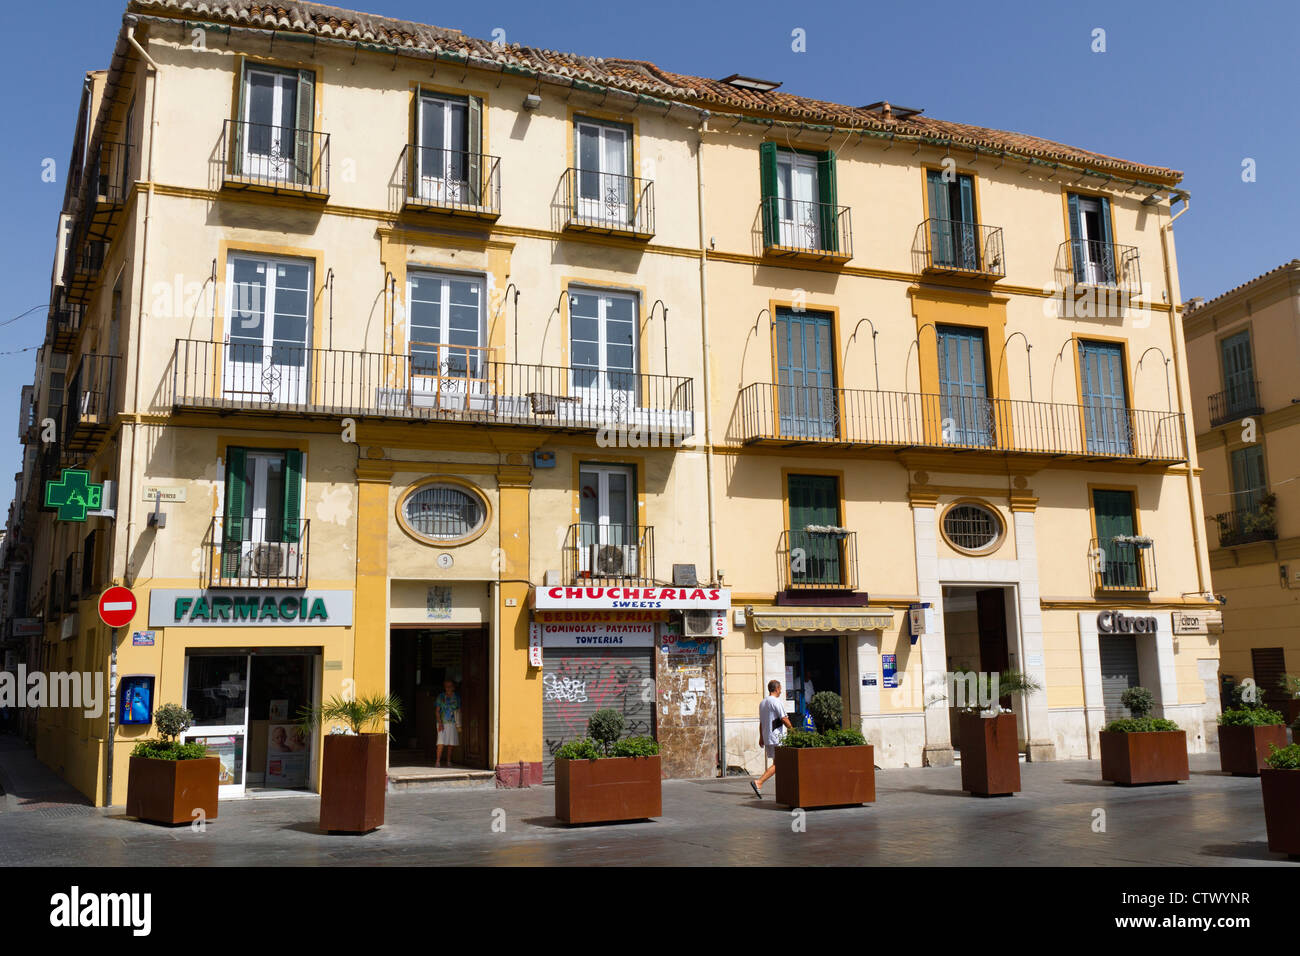 Malaga old town stock photos malaga old town stock for Apartments with shops below